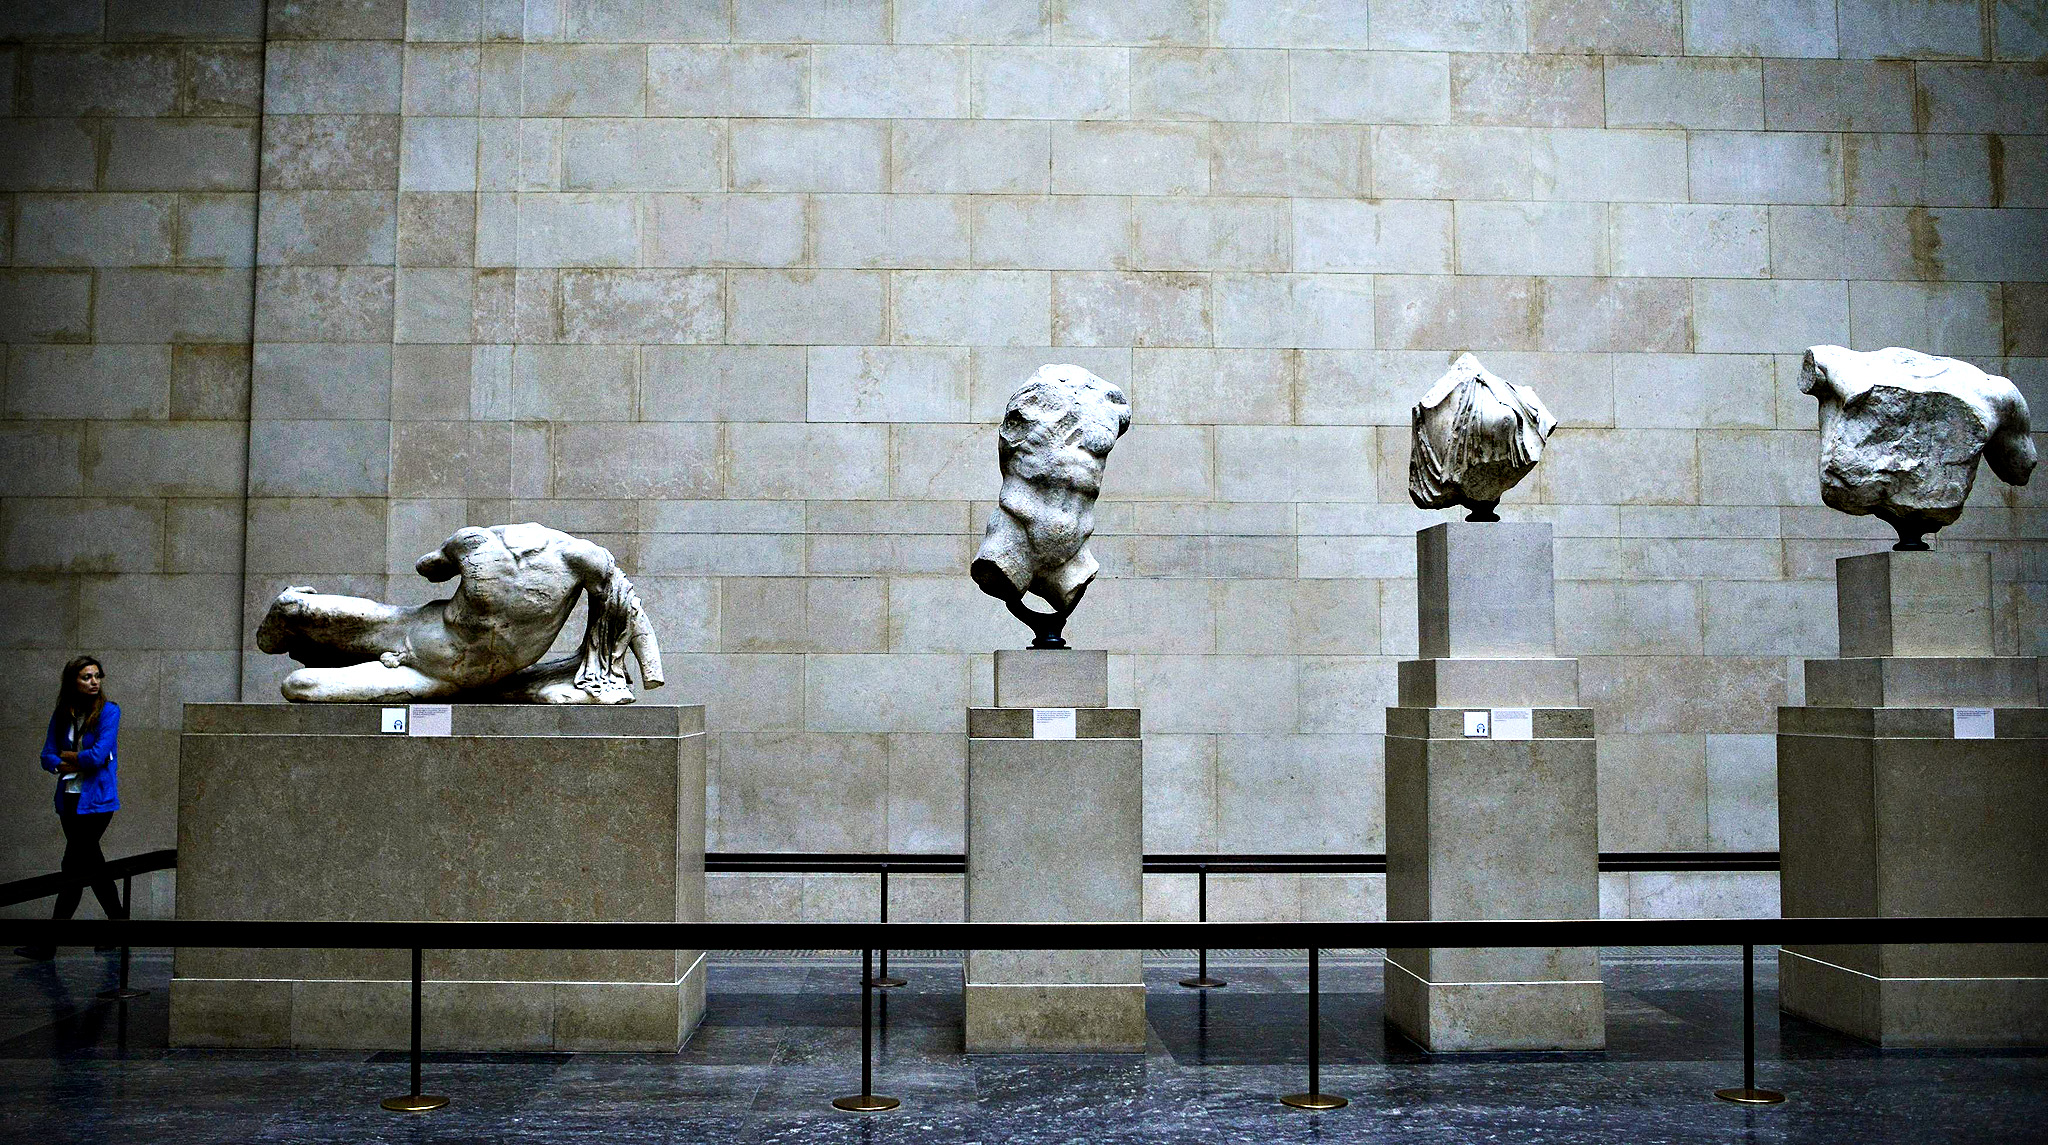 A woman looks at the Parthenon Marbles, a collection of stone objects, inscriptions and sculptures, also known as the Elgin Marbles, on show at the British Museum in London October 16, 2014. Hollywood actor George Clooney's new wife, human rights lawyer Amal Alamuddin Clooney, made an impassioned plea on for the return of the Parthenon Marbles to Athens, in what Greeks hope may inject new energy into their national campaign.